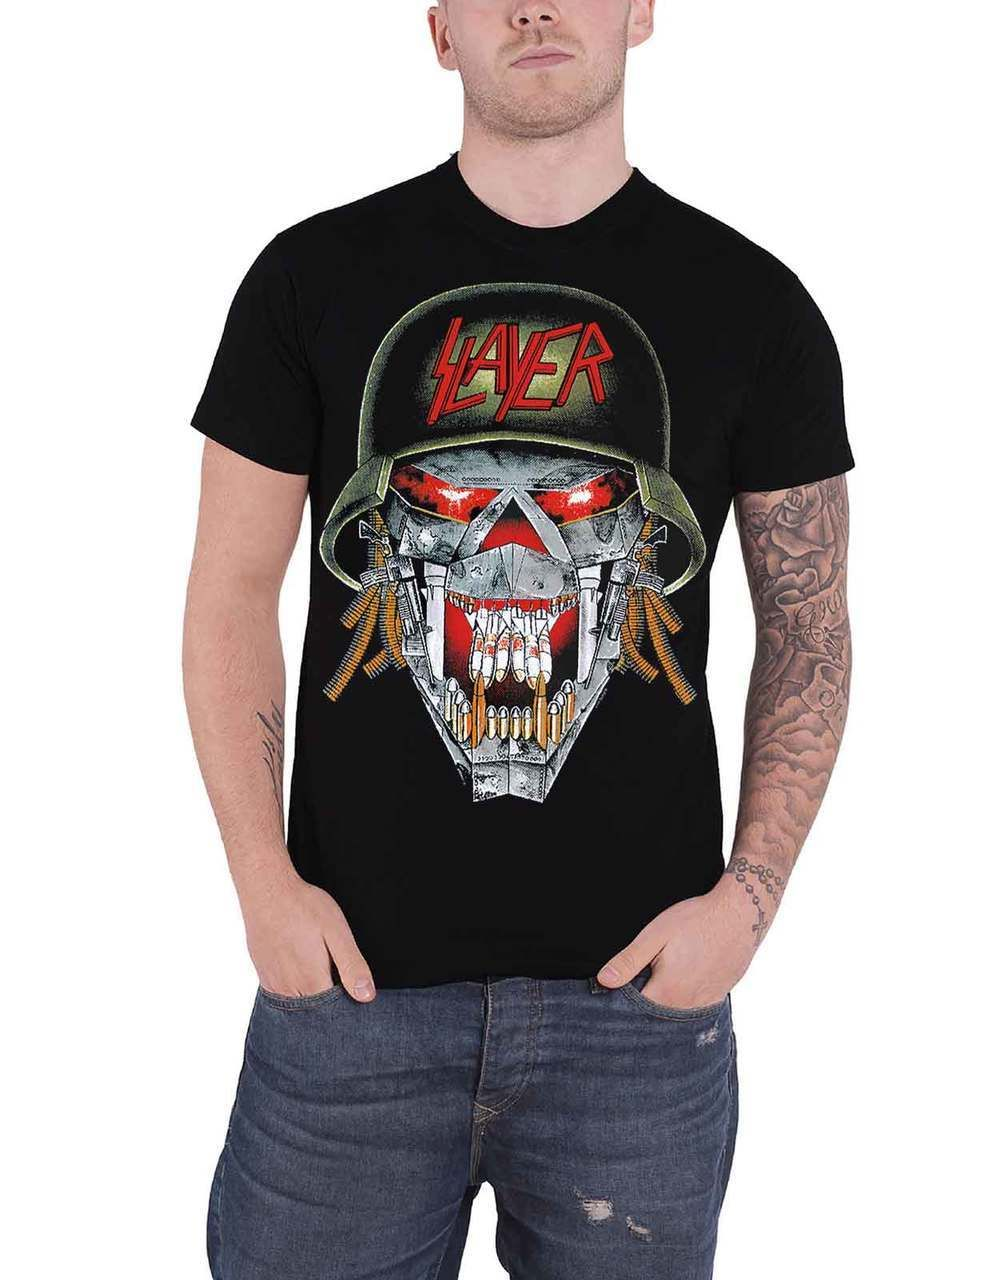 60fbe5468 Slayer T Shirt War Skull Ensemble Band Logo Mens Black - Paradiso Clothing